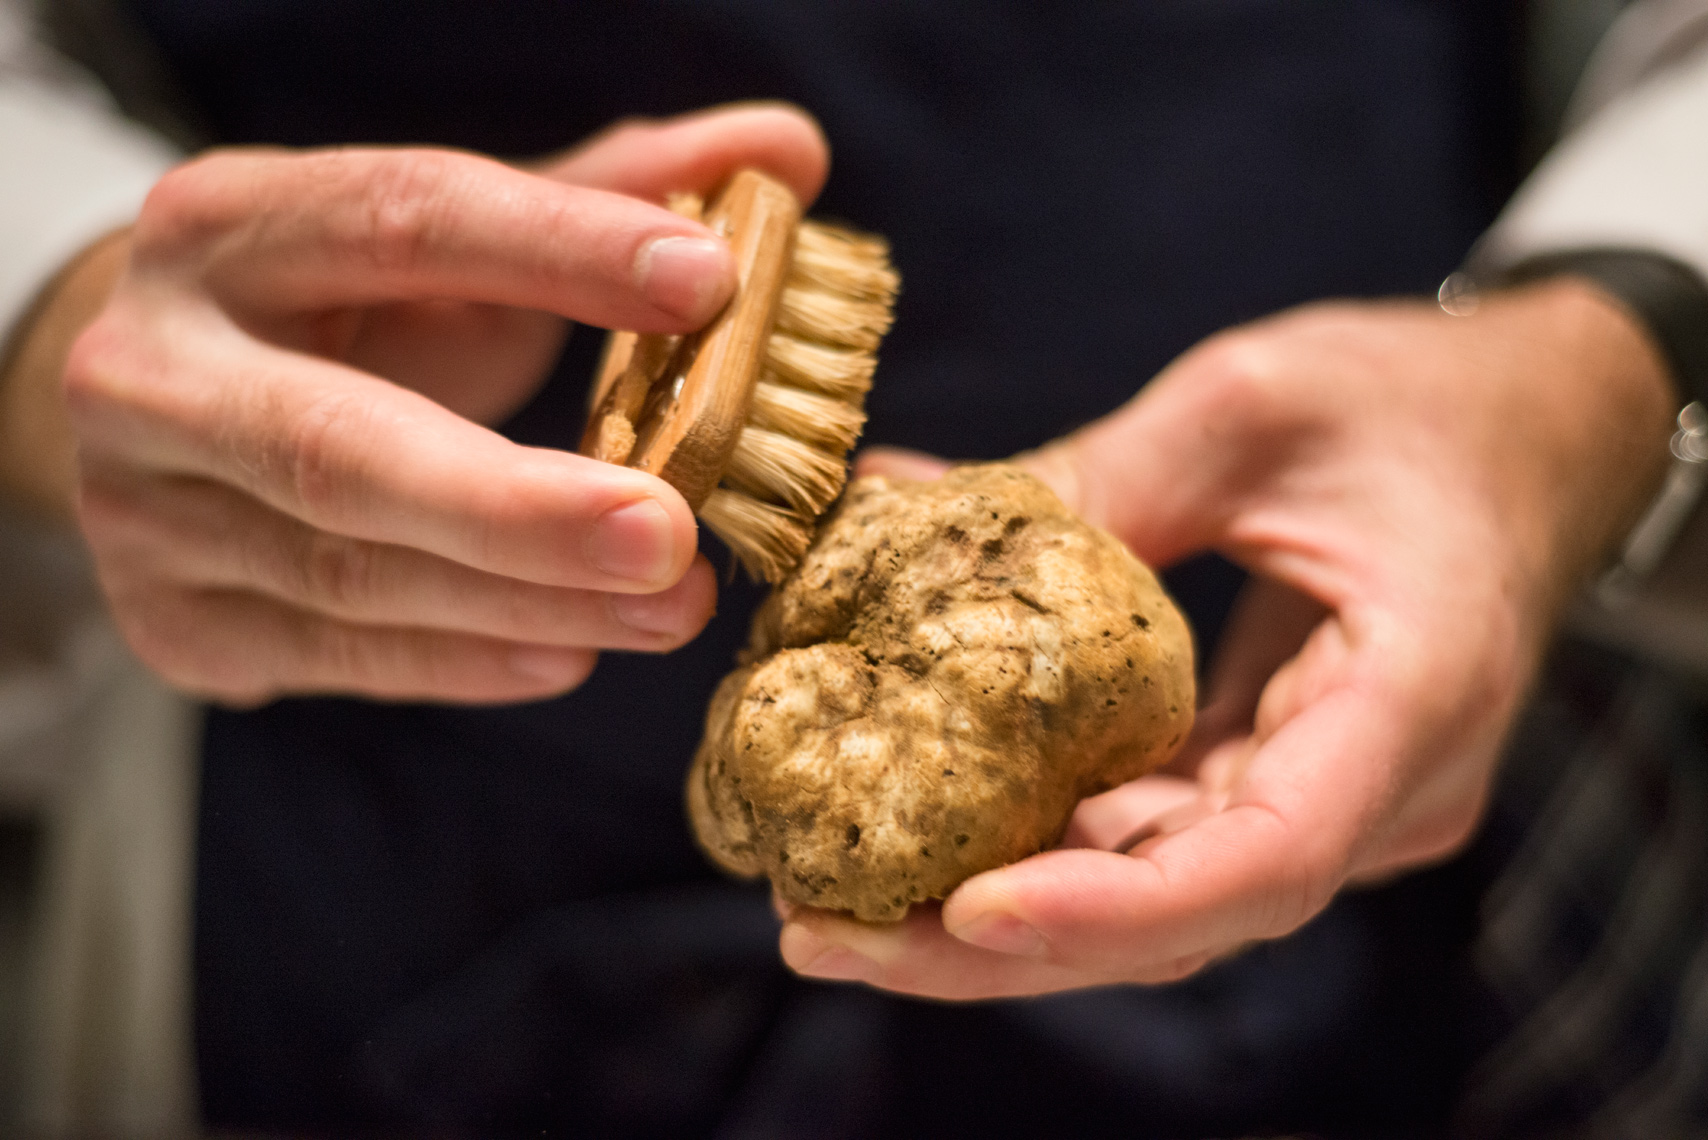 White truffle food prep